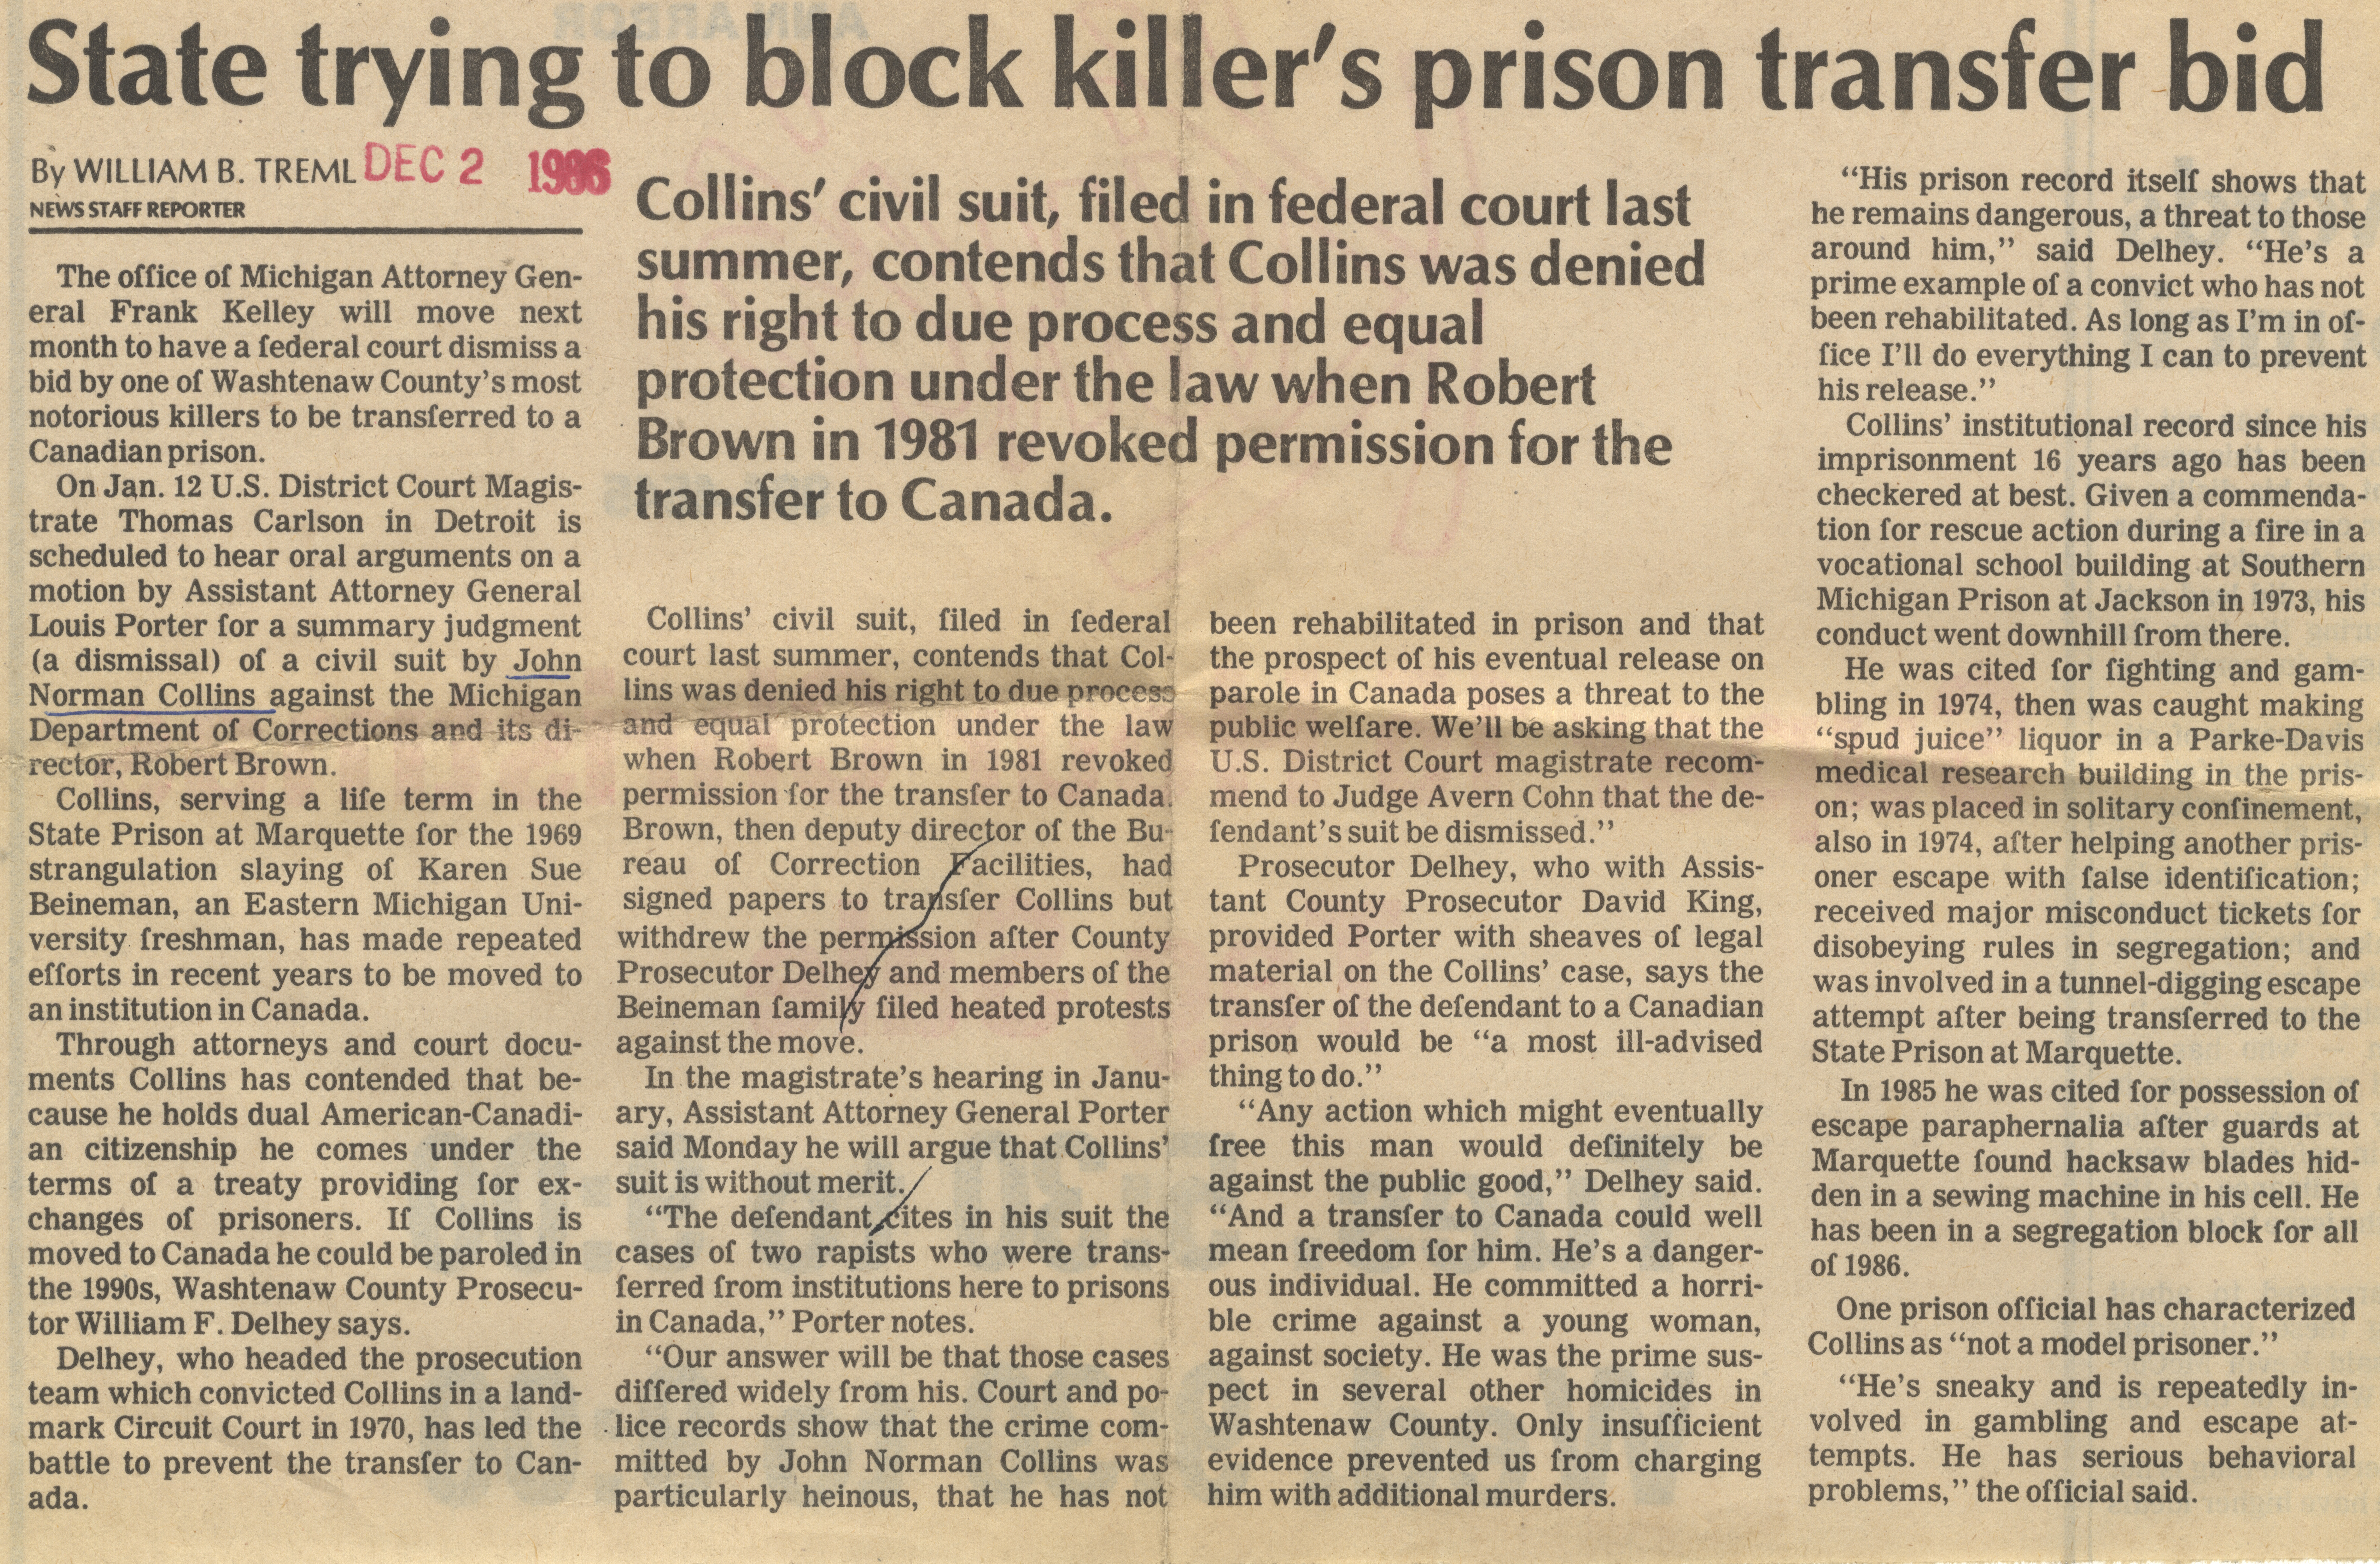 State trying to block killer's prison tranfer bid image